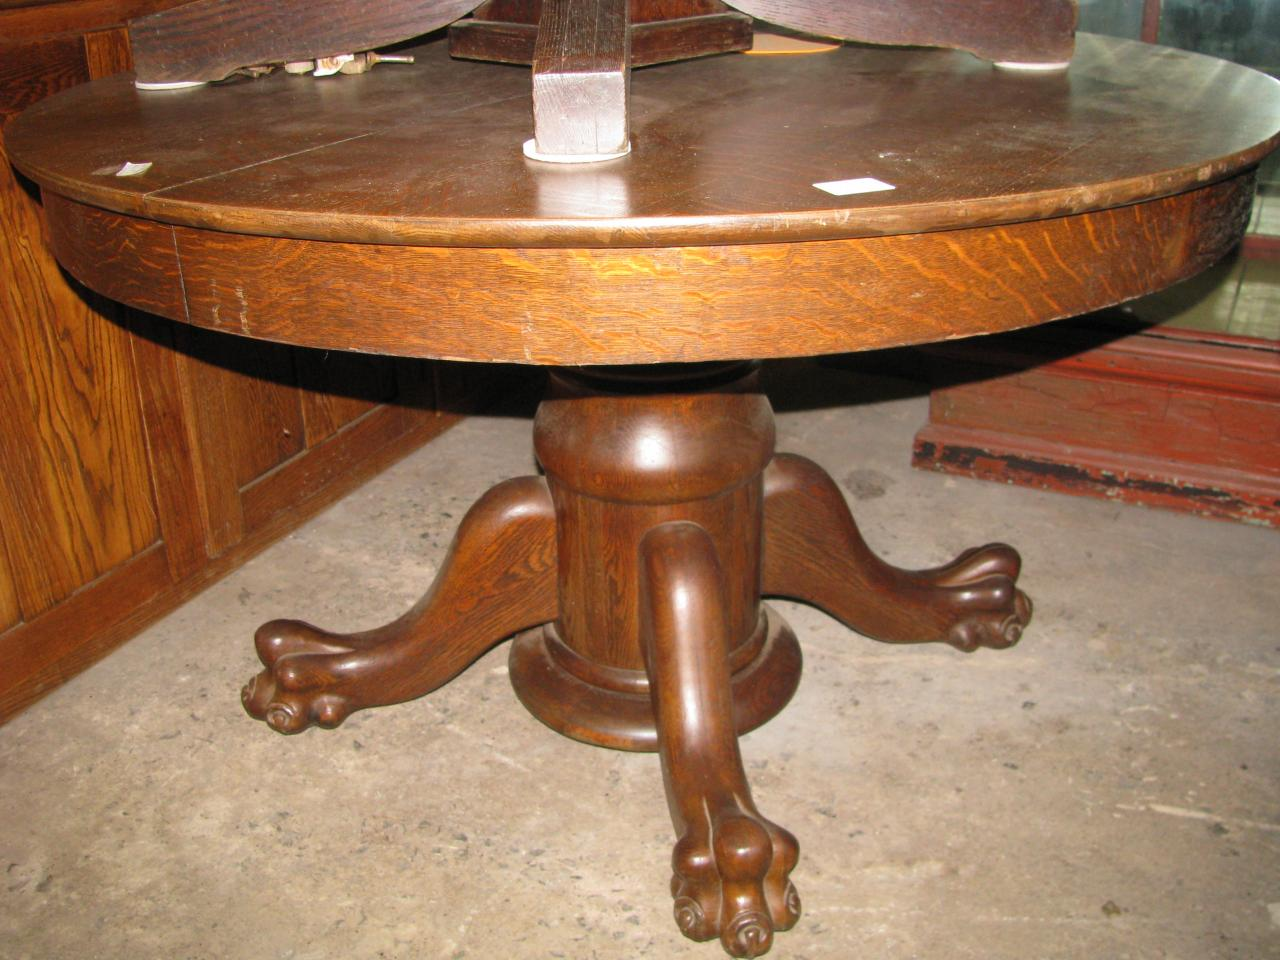 Z S Antiques Restorations Antique Oak Walnut And Pine Tables